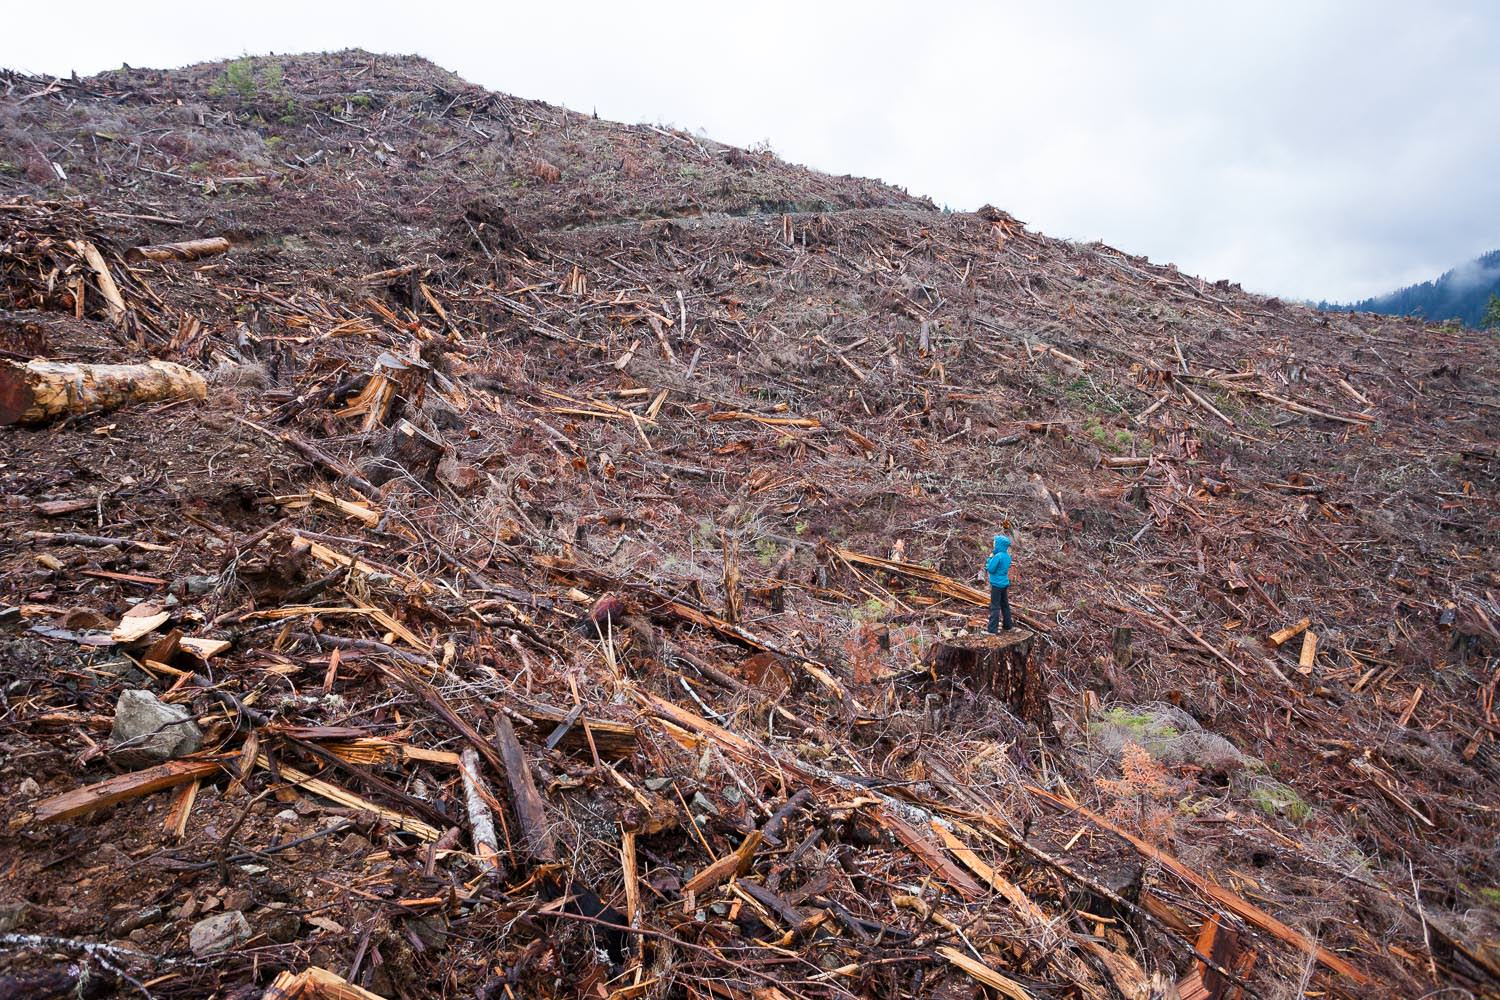 walbran-valley-clearcut-with-person.jpg